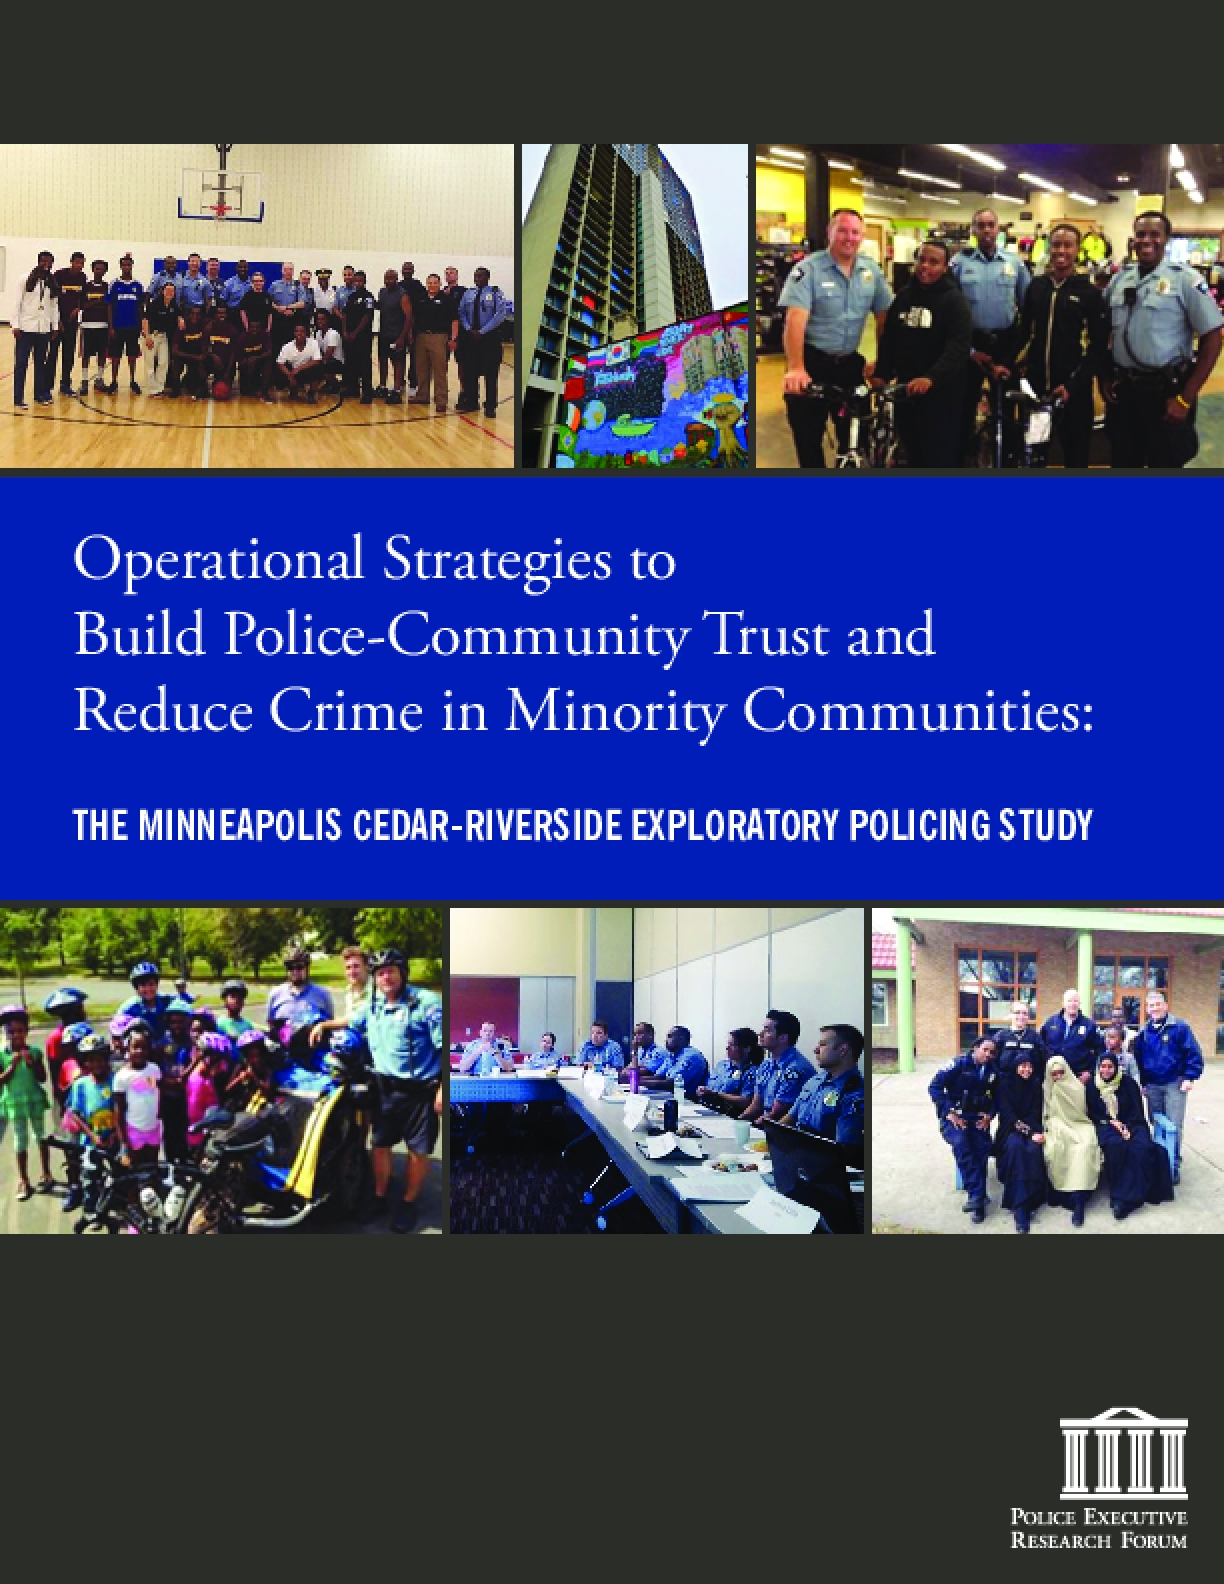 Operational Strategies to Build Police-Community Trust and Reduce Crime in Minority Communities: The Minneapolis Cedar-Riverside Exploratory Policing Study